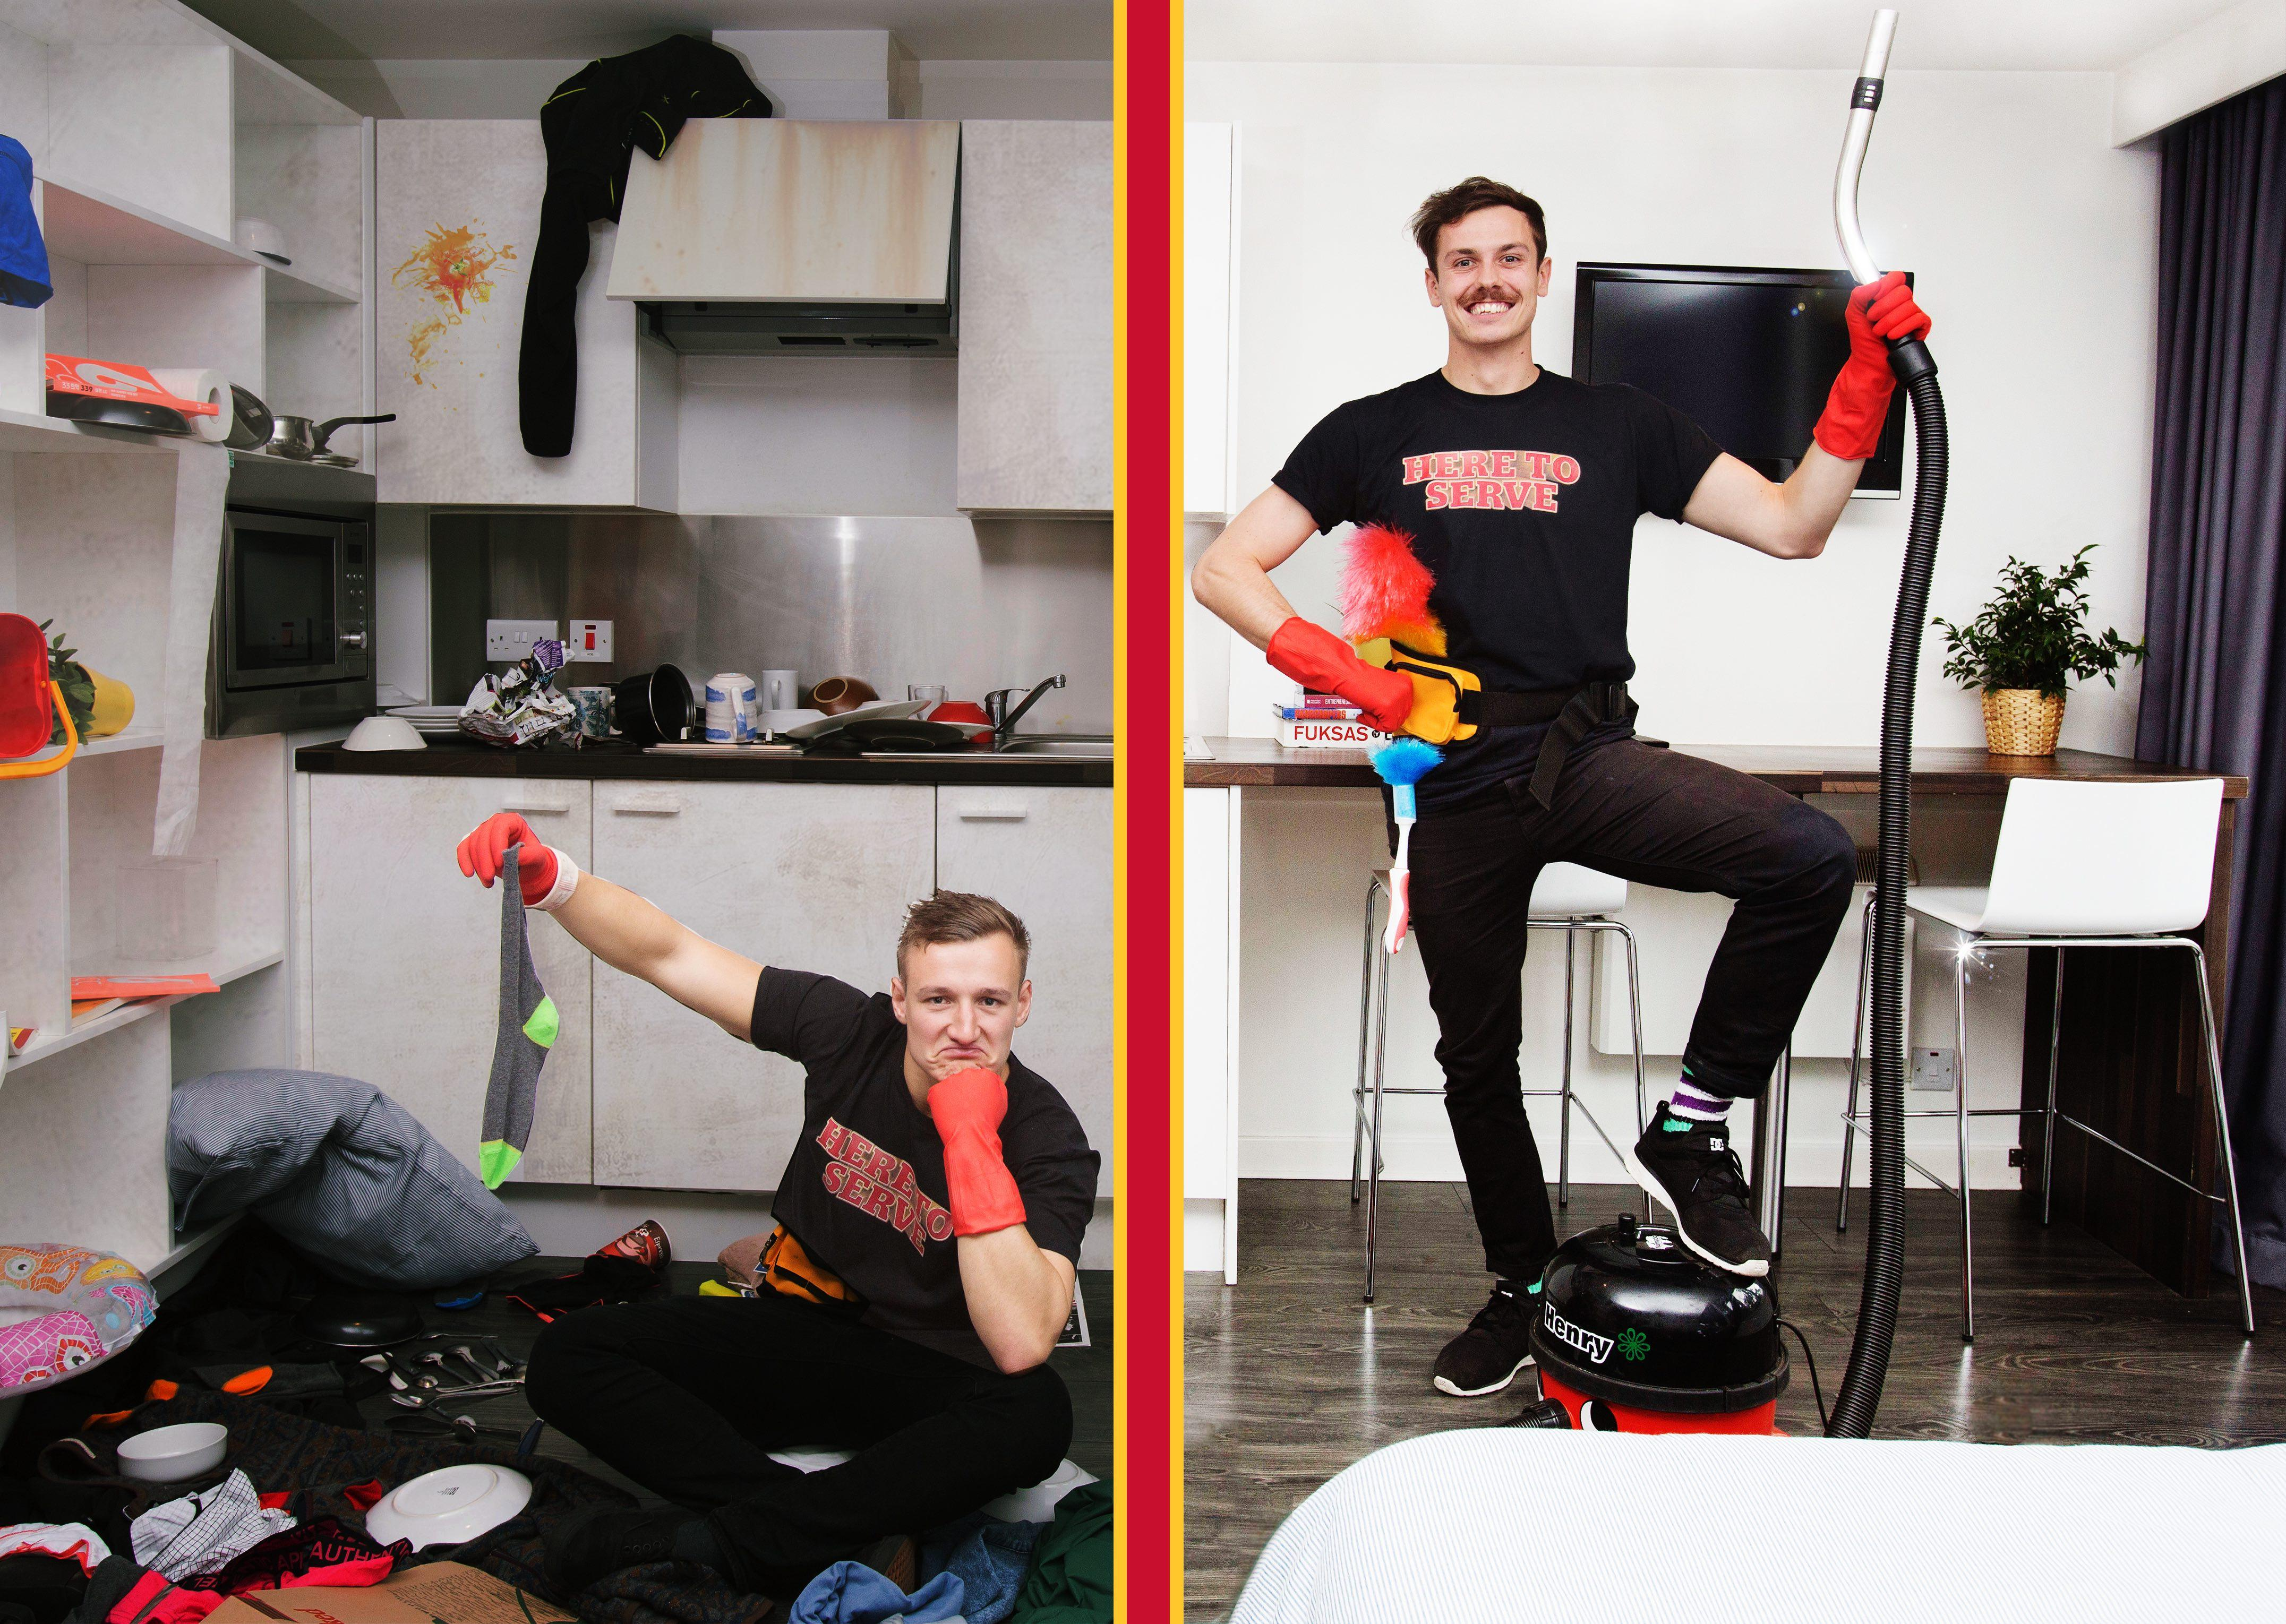 These boys will help you tidy up